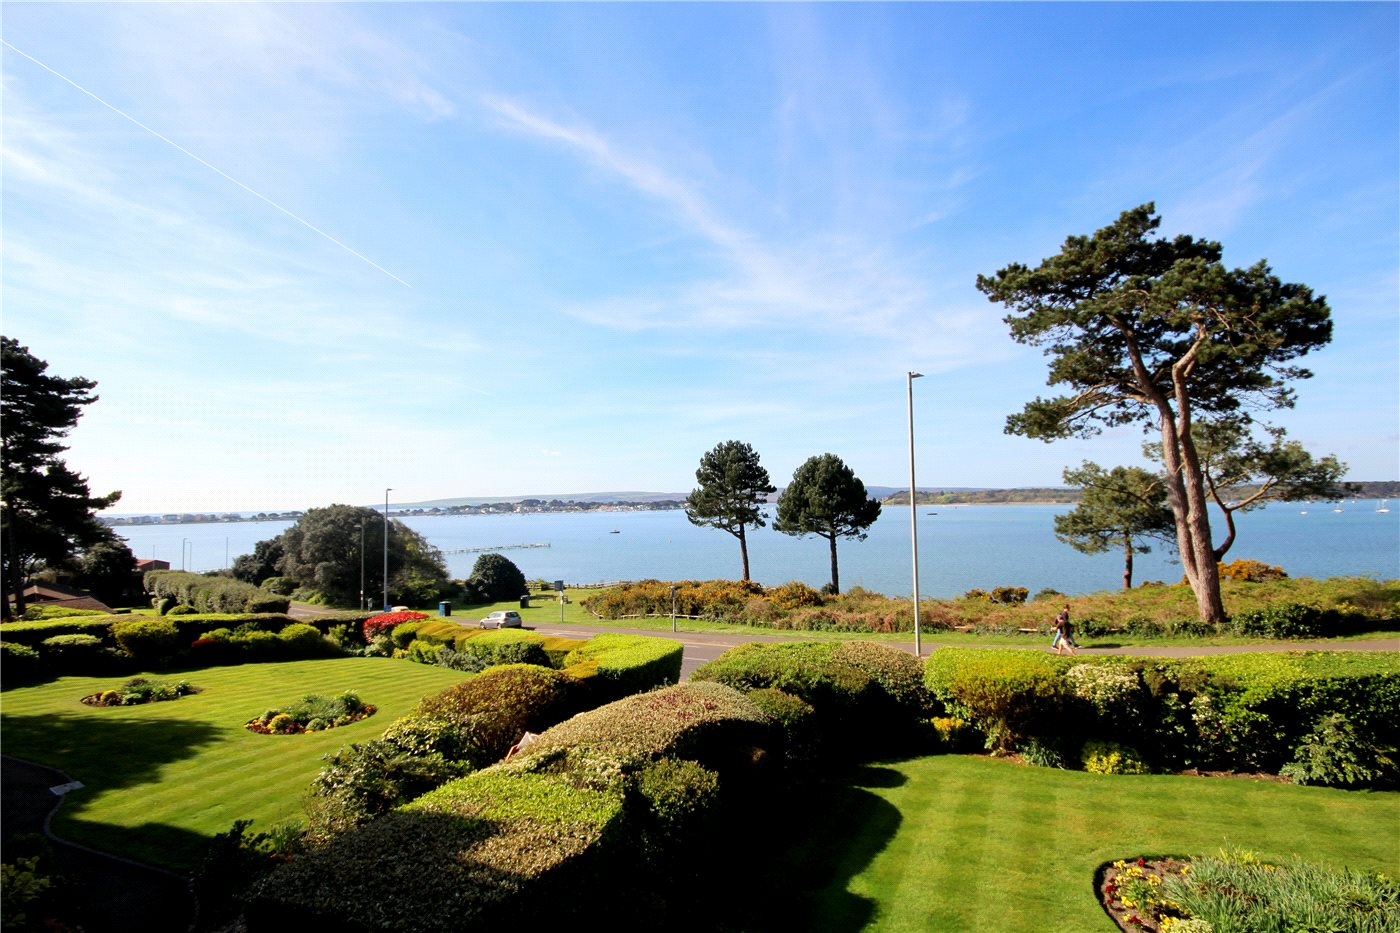 3 Bedrooms Flat for sale in Sandbanks Road, Poole, Dorset, BH14